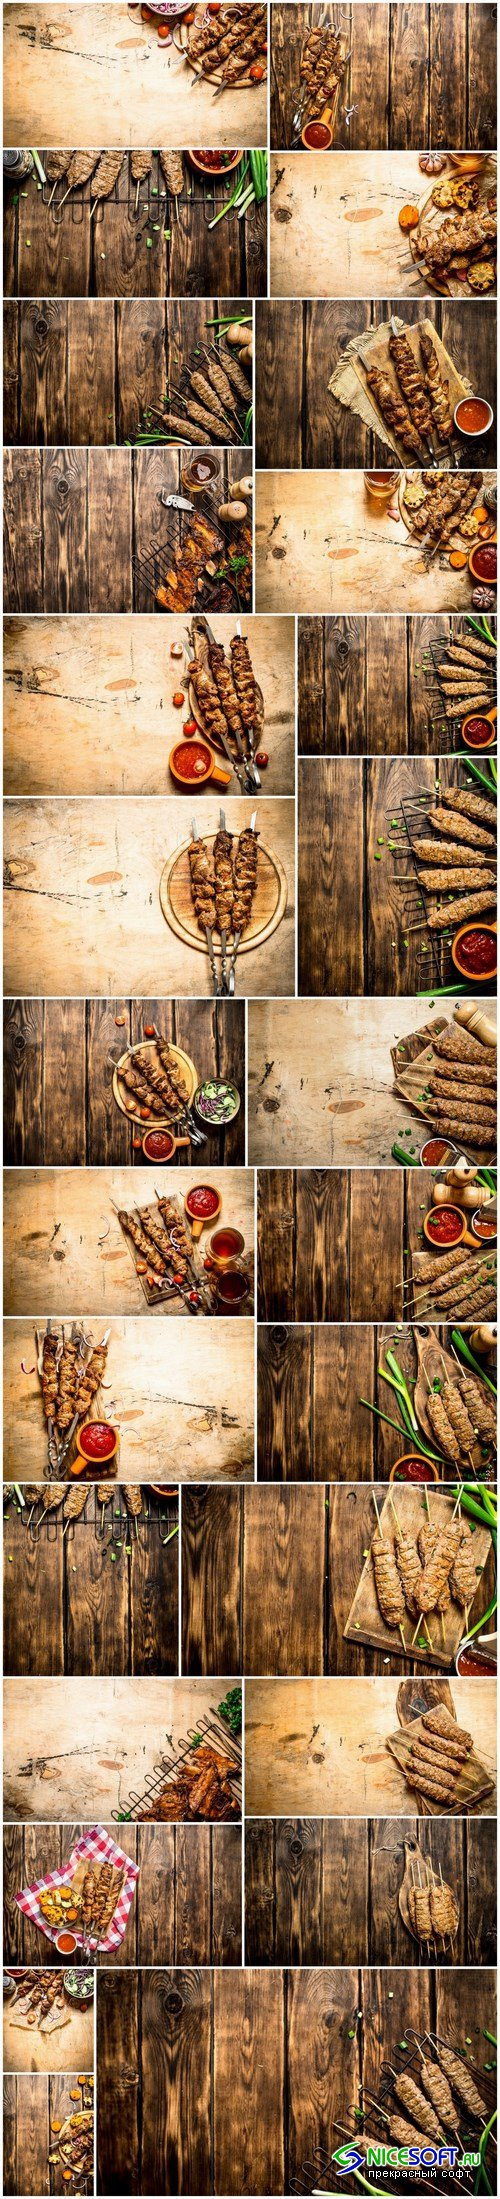 Kebab and garnish - 27xUHQ JPEG Photo Stock